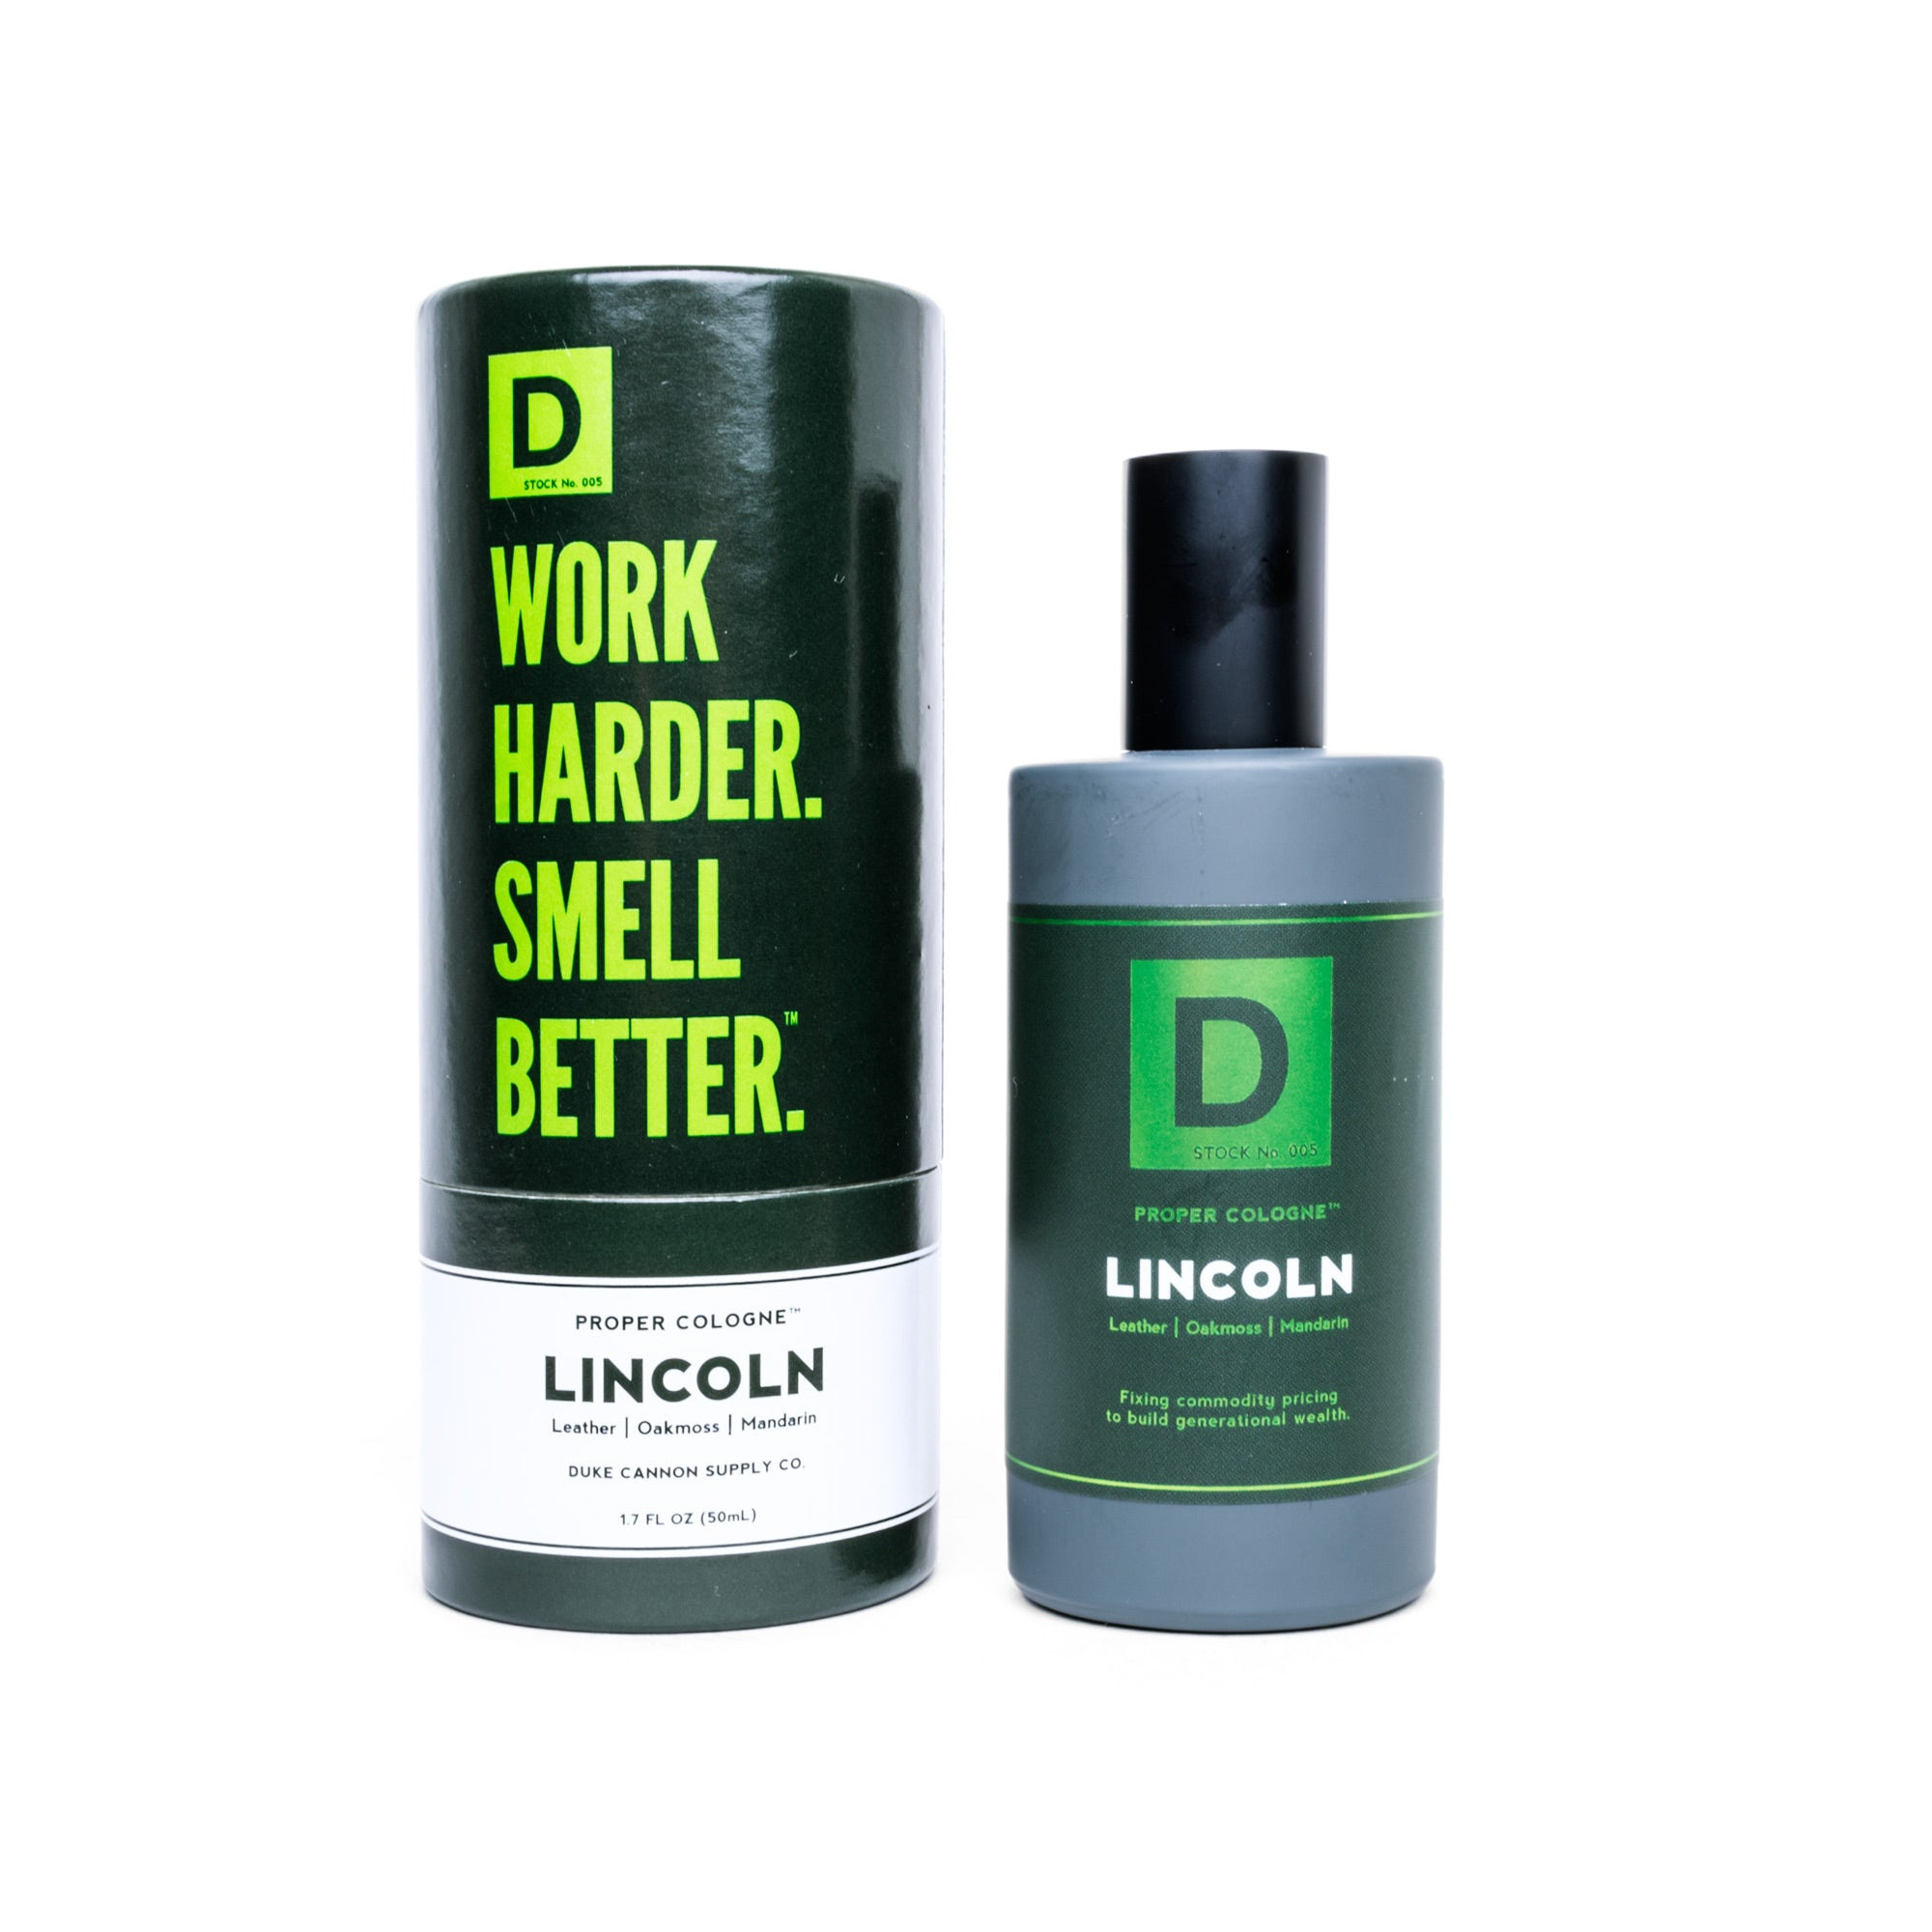 Proper Cologne – Lincoln